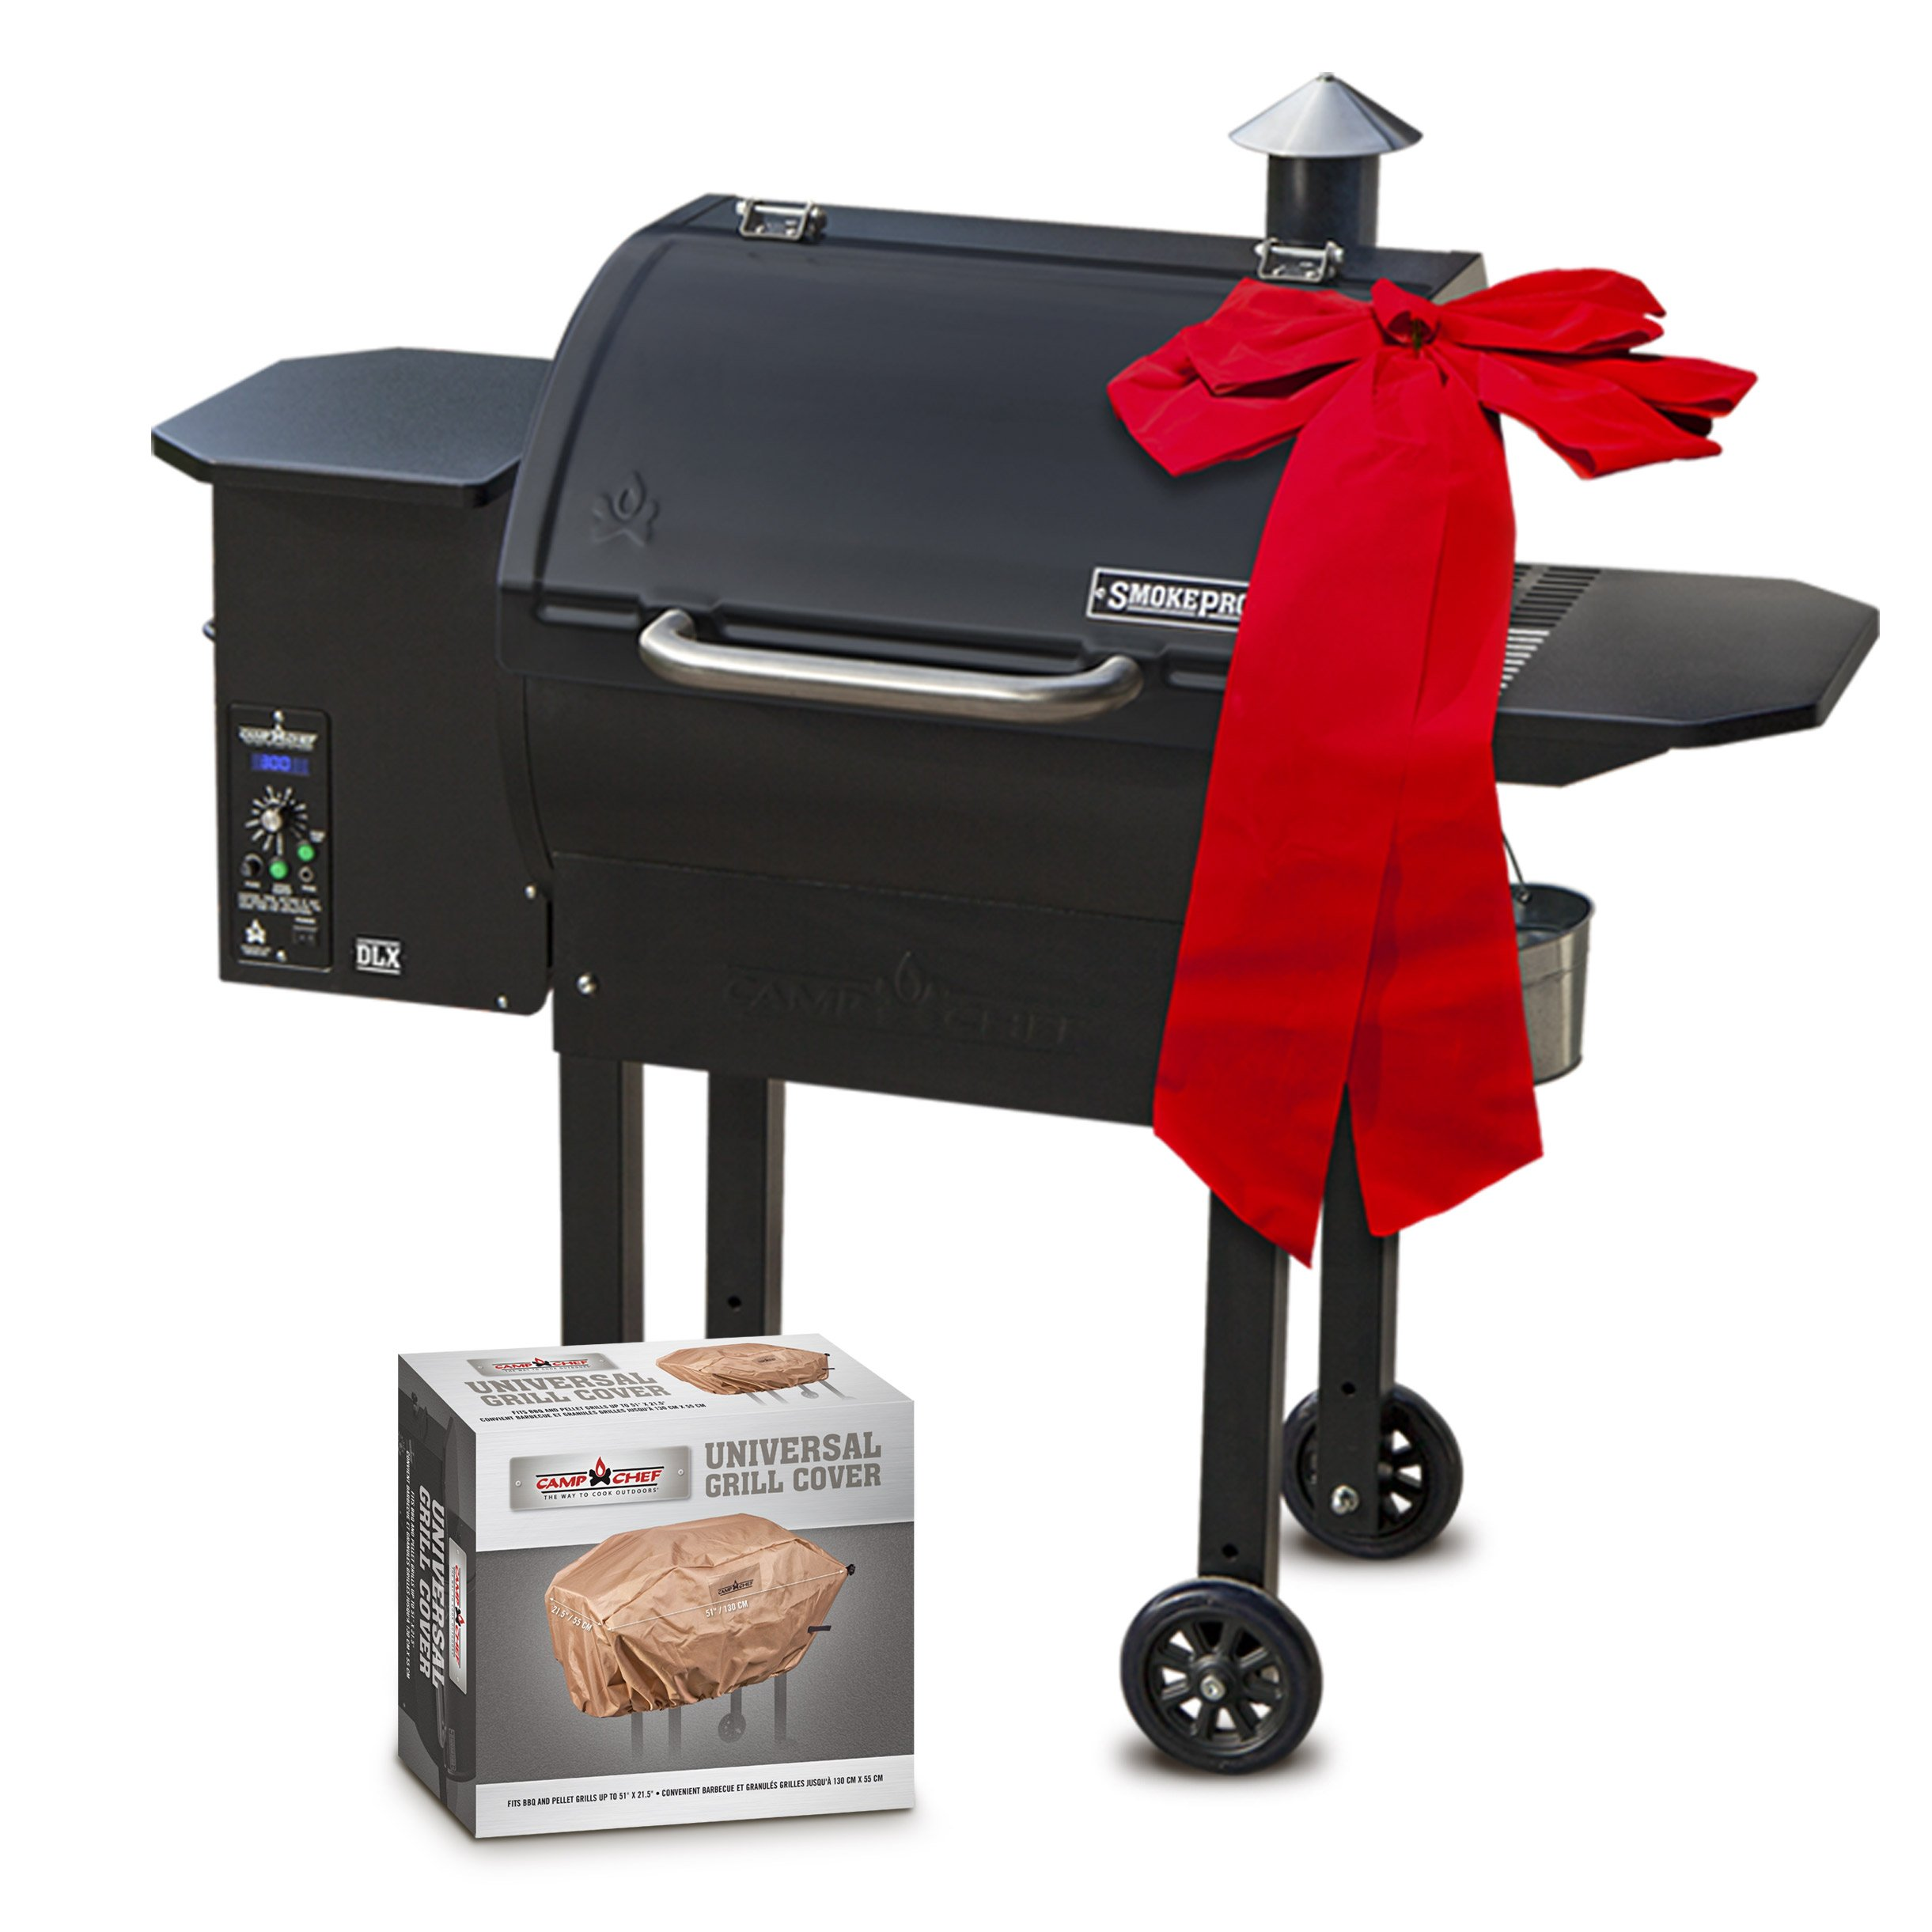 Camp Chef SmokePro DLX PG24 Pellet Grill With Patio Cover - Holiday Bundle by Camp Chef